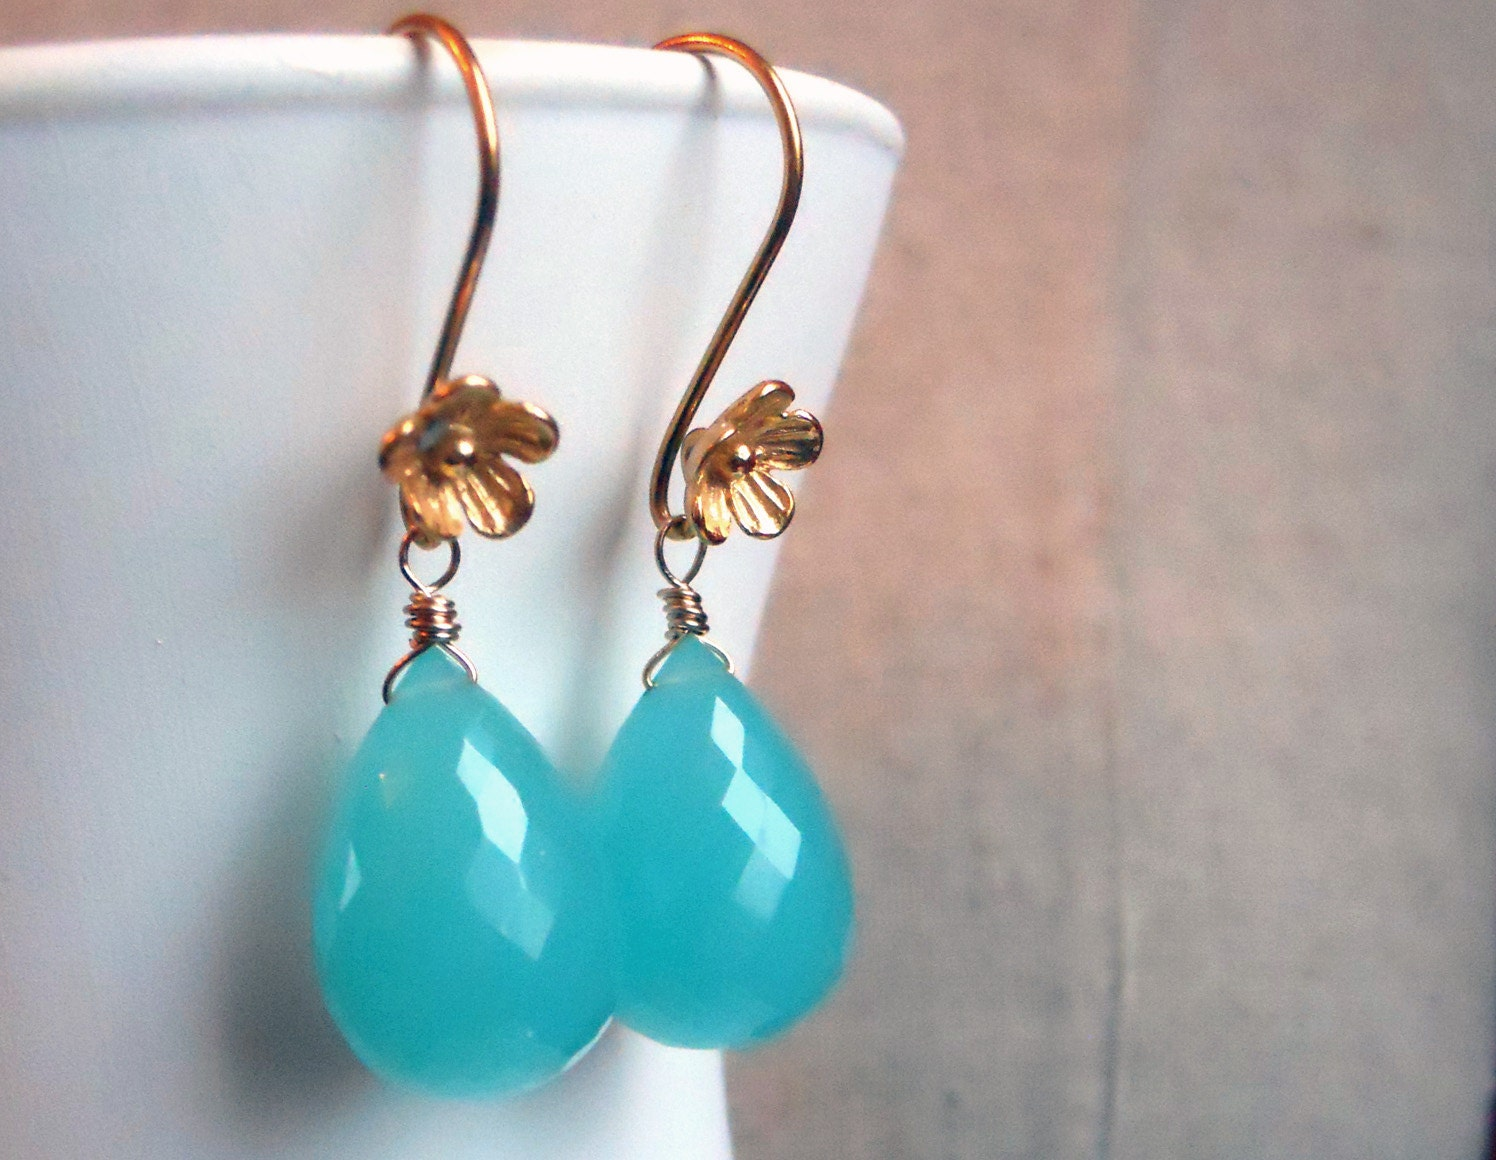 Seafoam Teardrop Chalcedony Cherry Blossom Earrings - $56.00 USD